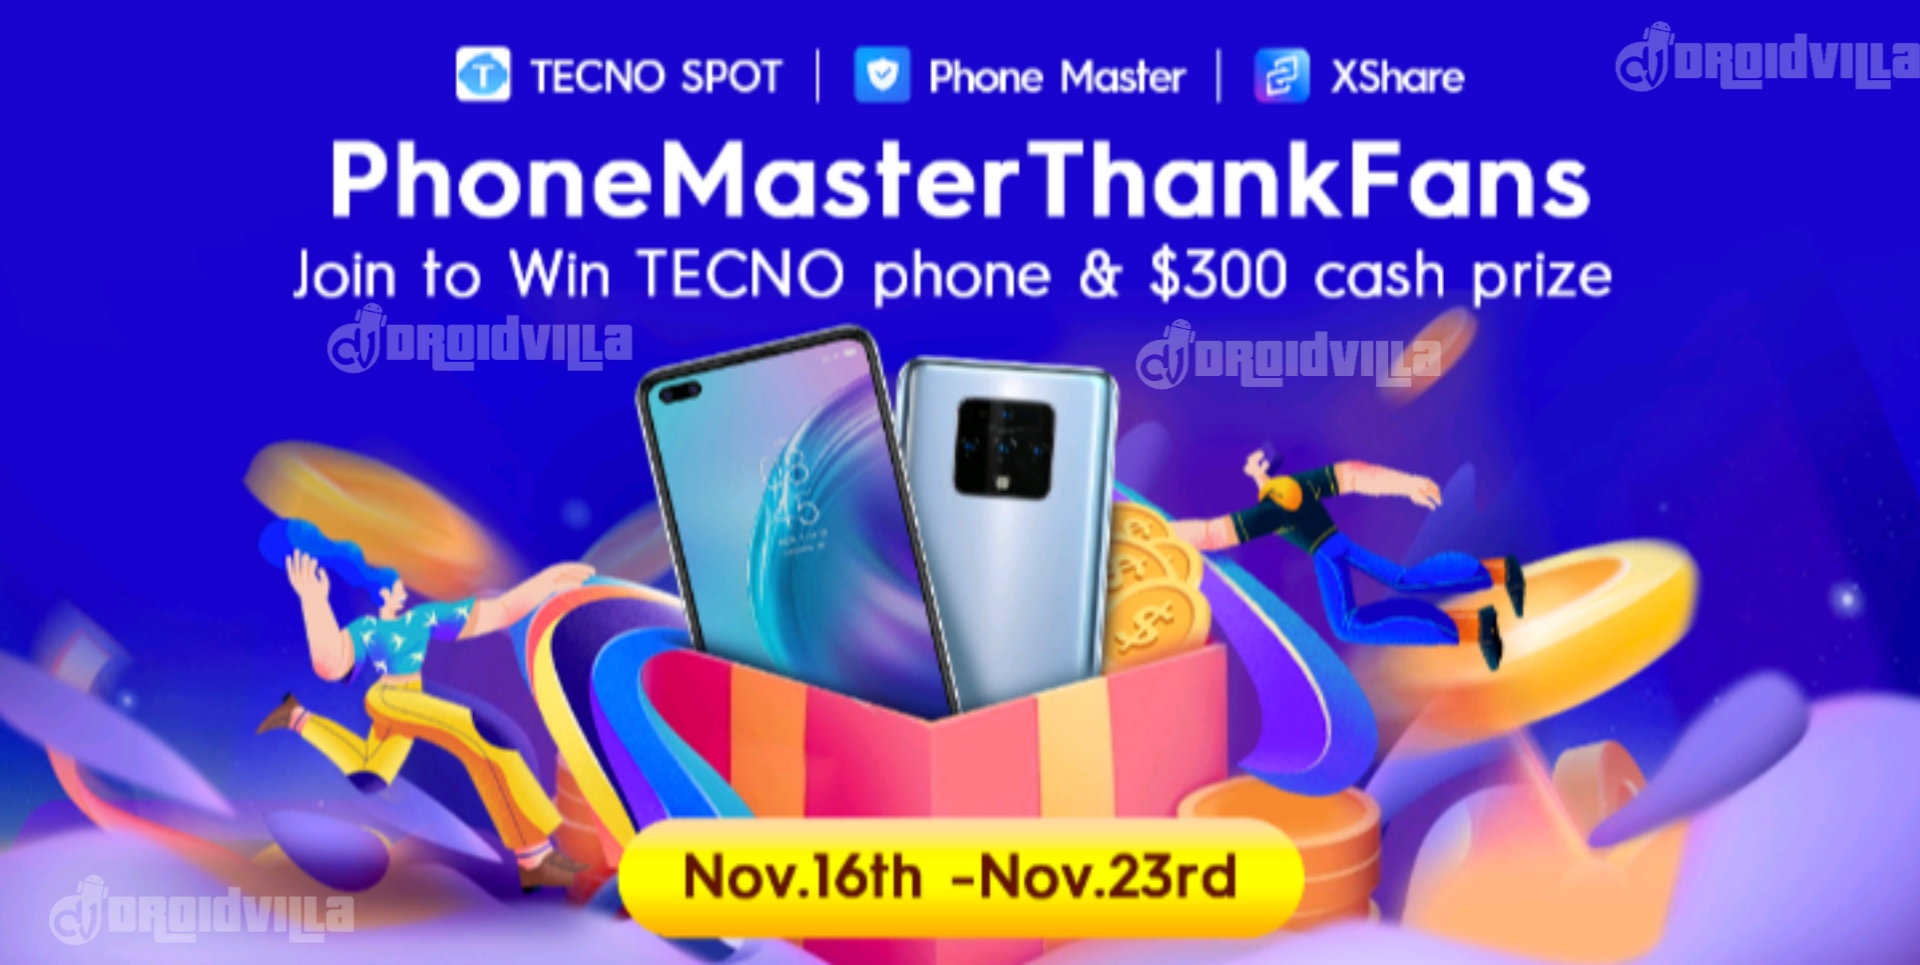 How To Participate and Win Free $20 During Tecno PhoneMasterThankFans 2020 Gift Promo